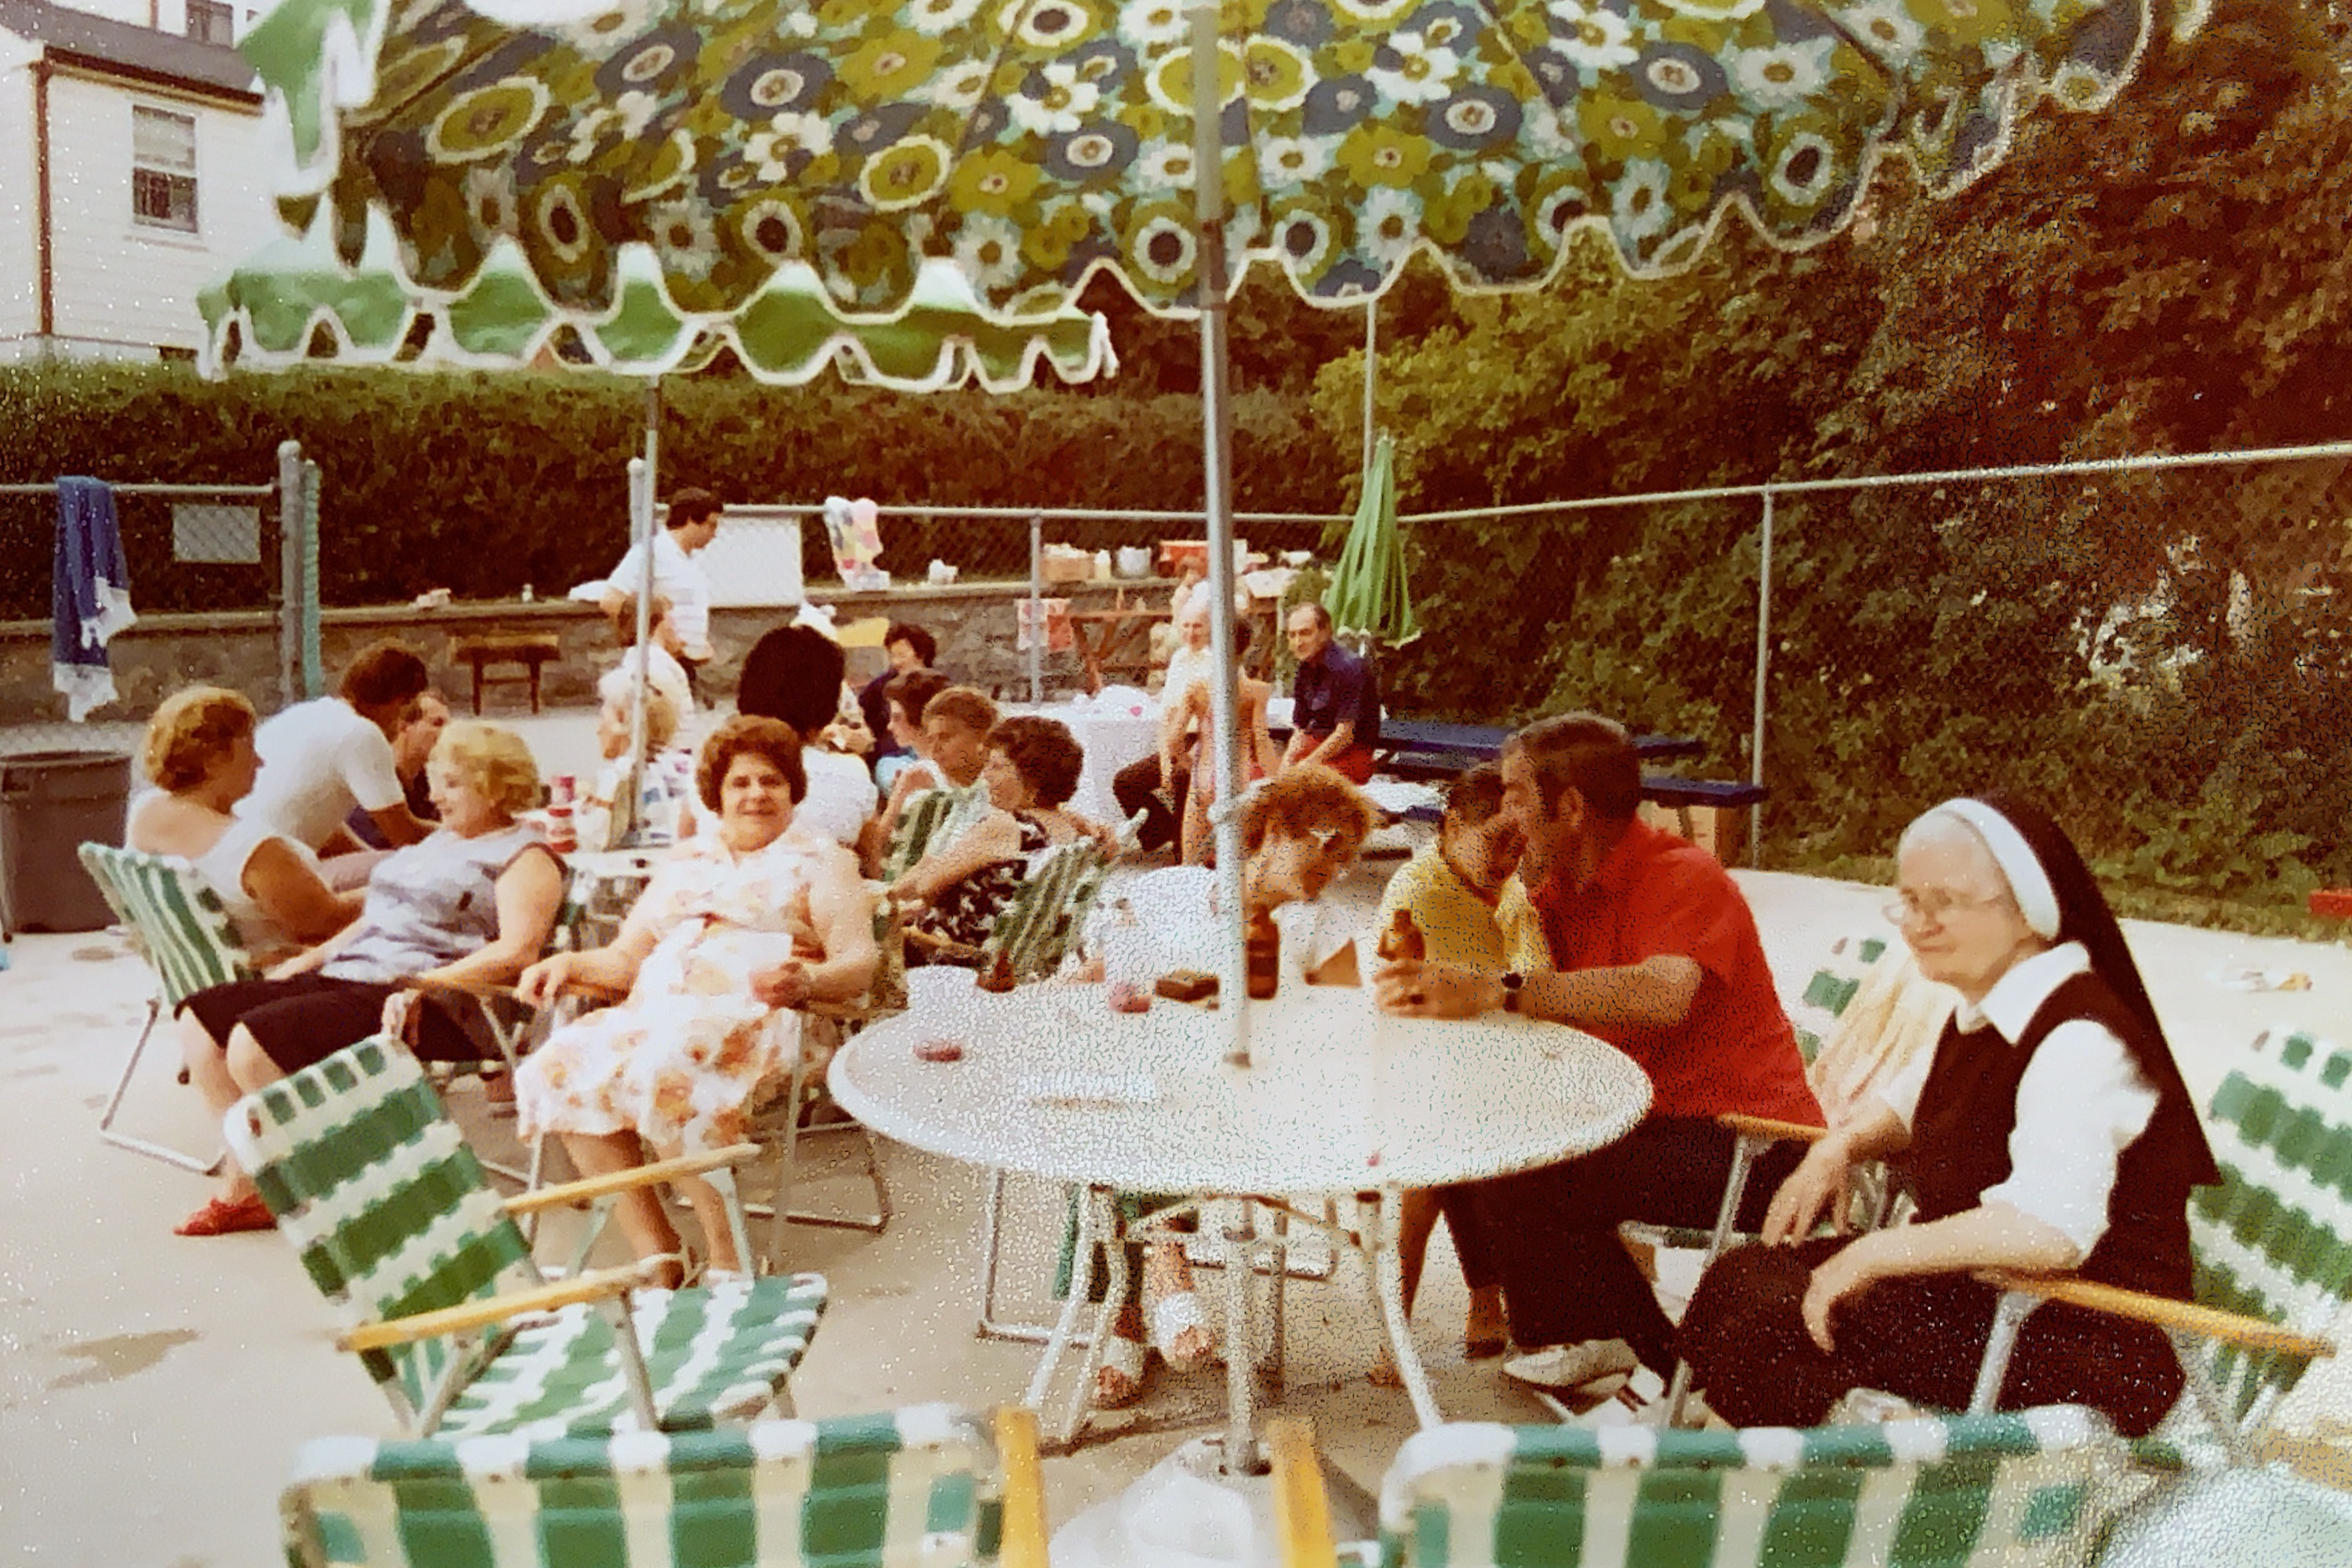 A pool party in the 1970s